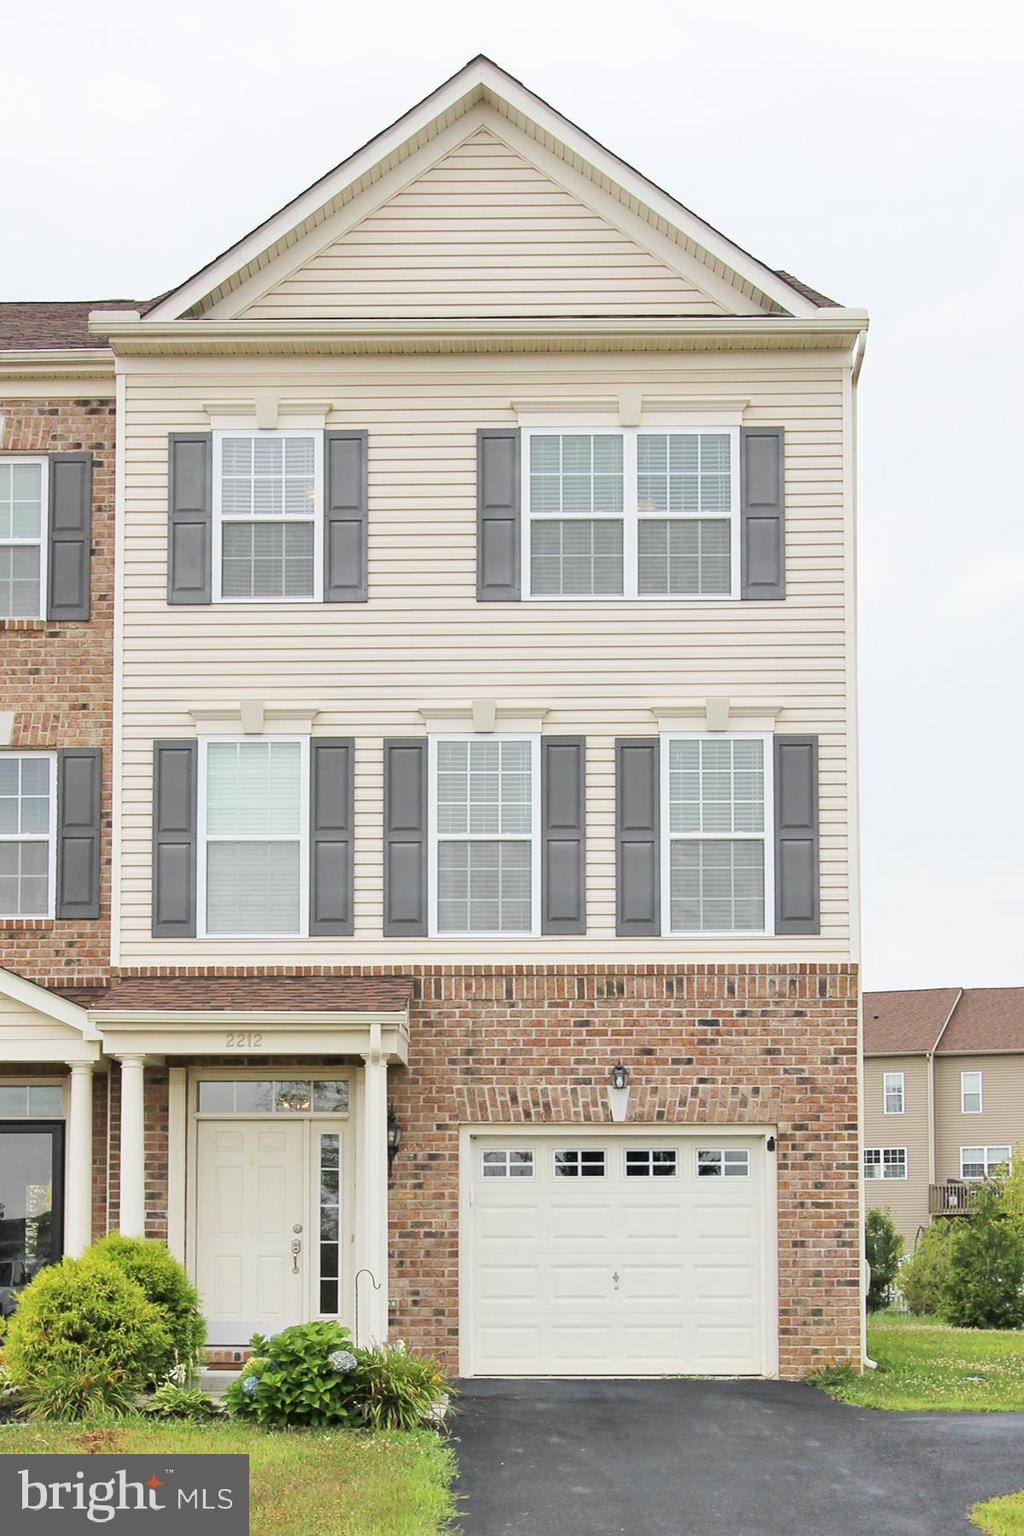 """Welcome home to the largest end unit townhome in the highly sought after Village of Bayberry,  having 2,425 square feet.  Park in your driveway that has an additional spot for family or guests. Enter the lower level having a sizeable foyer, access to the garage, and a room that could be your home office or great room with sliders to your backyard. Making your way upstairs you will notice the abundance of windows in this wonderful sunny open floor plan. The gourmet kitchen has 42"""" Espresso cabinets, and ample counter space that leads to the sunroom with sliders to a composite deck, perfect for entertaining. The upper level has a master bedroom with a large walk in closet and a master bathroom with double vanities and shower. Two generous-sized bedrooms and hall bathroom complete this level. All bedrooms have ceiling fans! Enjoy the countless amenities Village of Bayberry has to offer like walking trails, playgrounds, fishing and boating on a private lake, and the beautiful lake house which is  available for private parties and events. Easy access to major roads and interstate with no tolls. Your search is finally over. Schedule your tour today!"""